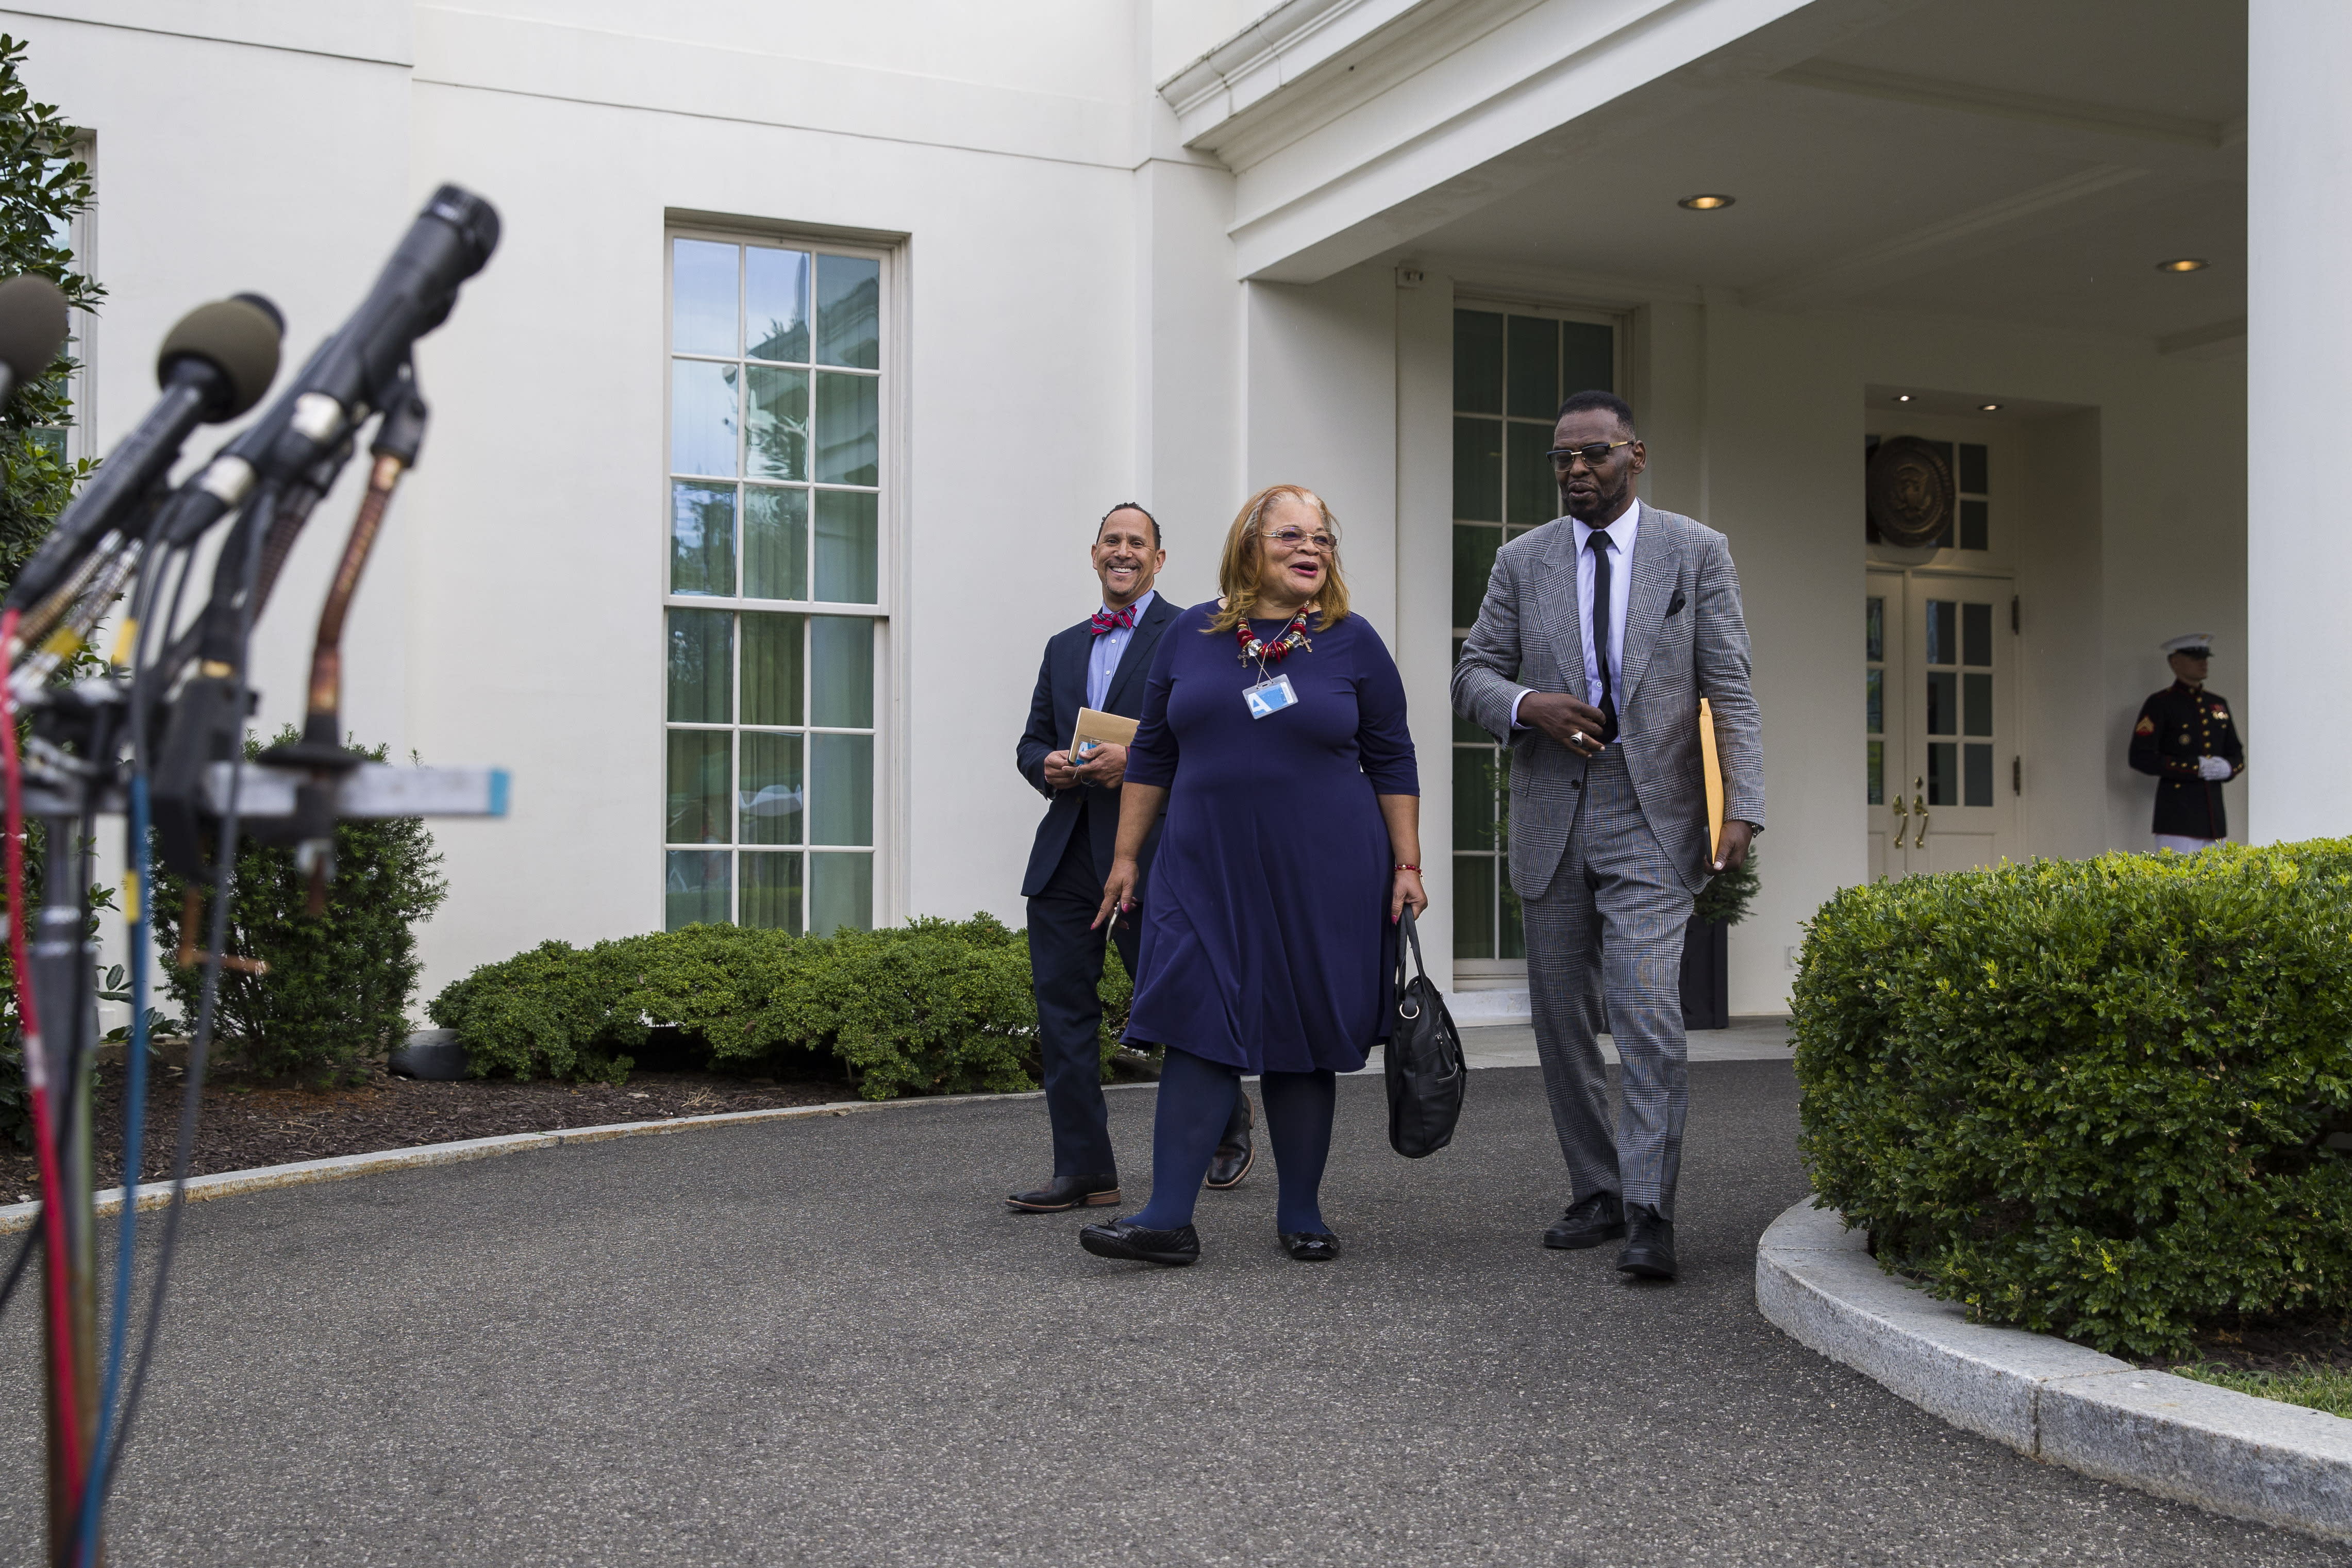 "FILE - In this July 29, 2019 file photo, Alveda King, a niece of Martin Luther King, Jr., center, arrives to speak with reporters, accompanied by Rev. Dean Nelson, left, and Bishop Harry Jackson, after meeting with President Donald Trump at the White House in Washington. As the threat of impeachment looms, President Donald Trump is digging in and taking solace in the base that helped him get elected: conservative evangelical Christians who laud his commitment to enacting their agenda. Jackson, a Maryland-based Pentecostal Bishop, has prayed with Trump in the White House, and said that he plans to hold a large prayer gathering this year for ""healing in the nation."" (AP Photo/Alex Brandon, File)"